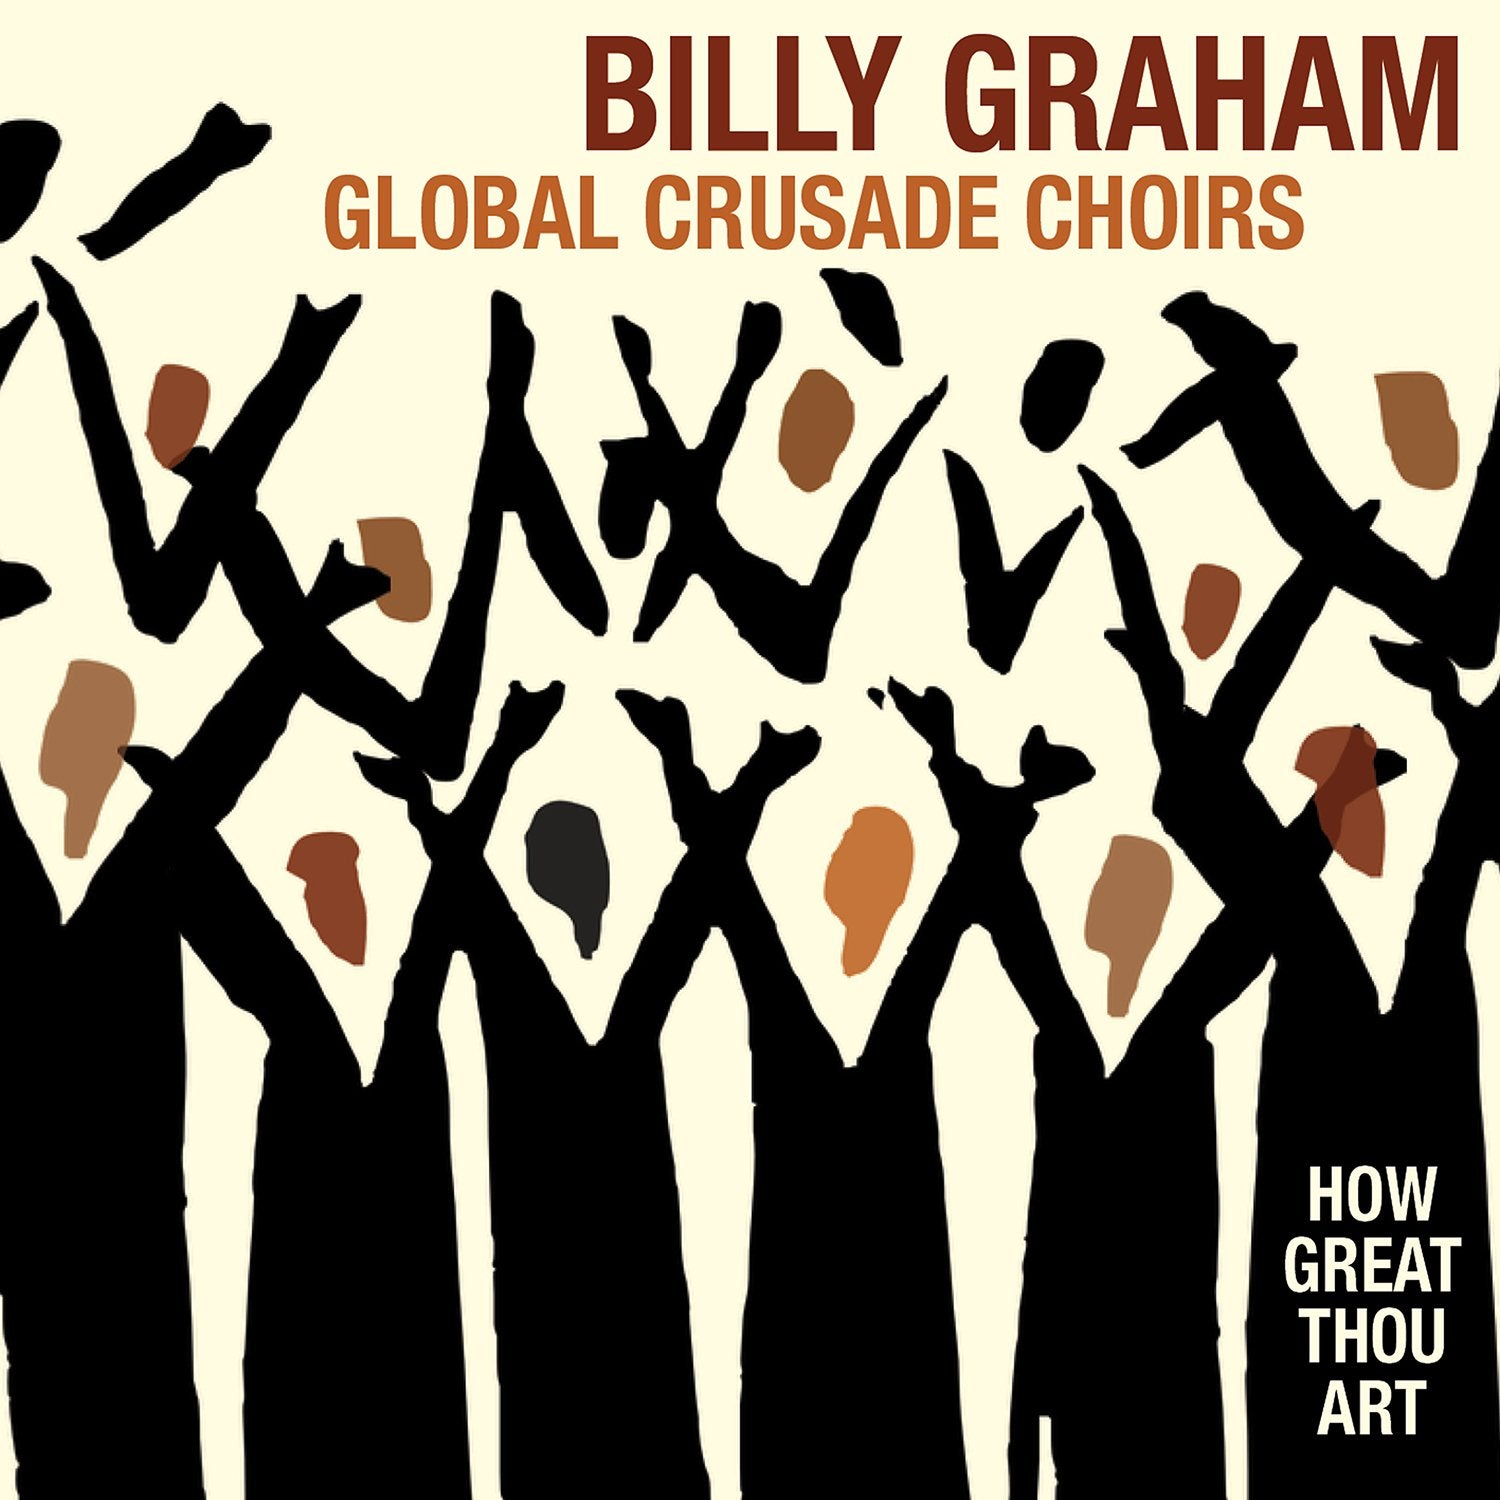 BILLY GRAHAM CRUSADE CHOIRS - HOW GREAT THOU ART